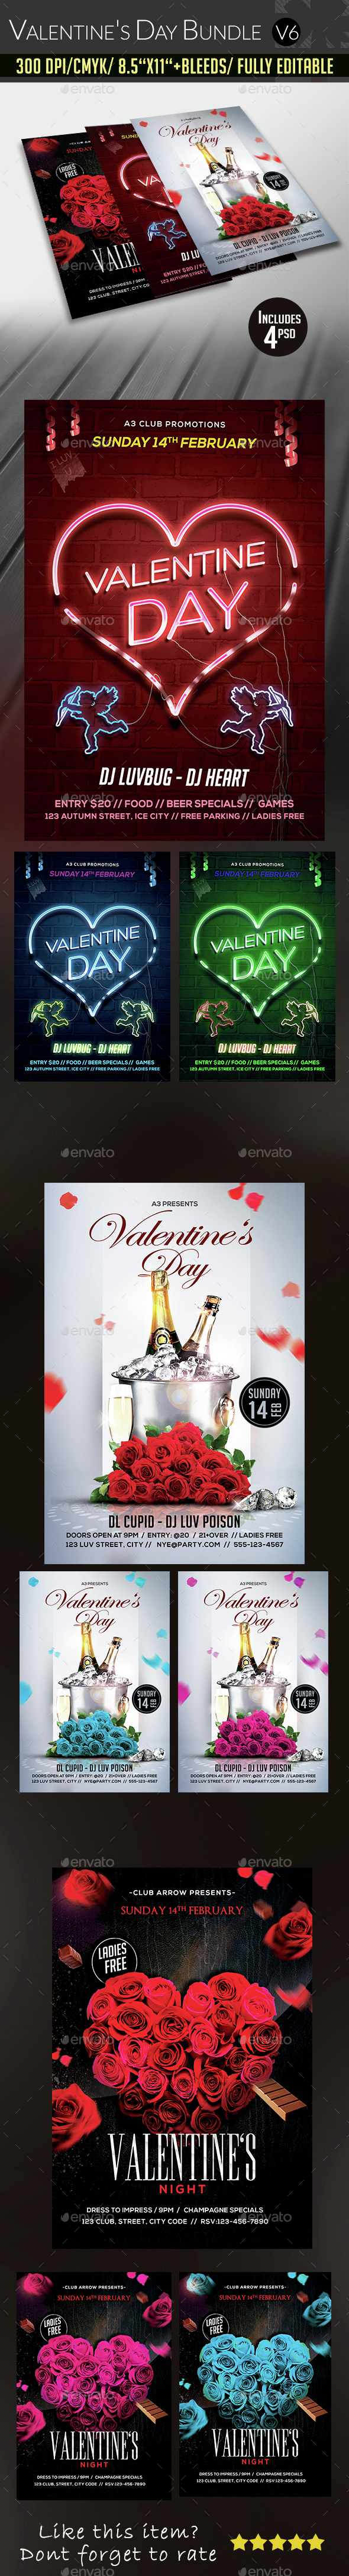 Valentine's Day Flyer Bundle v6 - Clubs & Parties Events